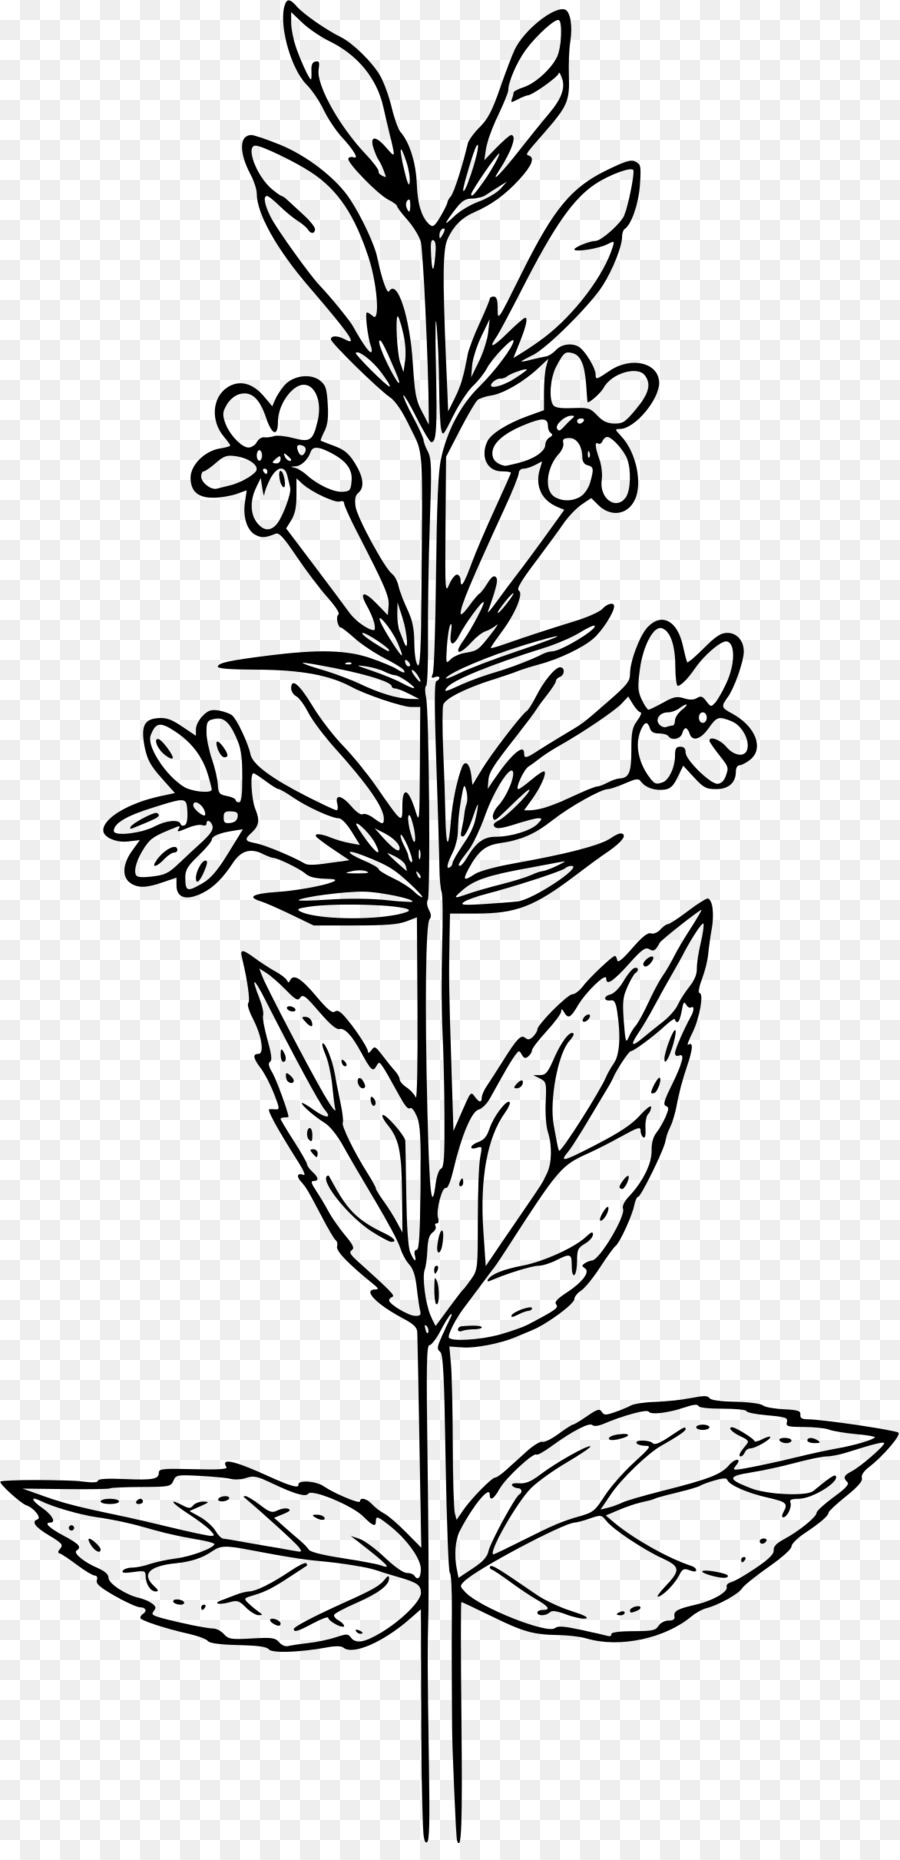 Penstemon clipart graphic download Black And White Flower clipart - Tshirt, Flower, Leaf ... graphic download